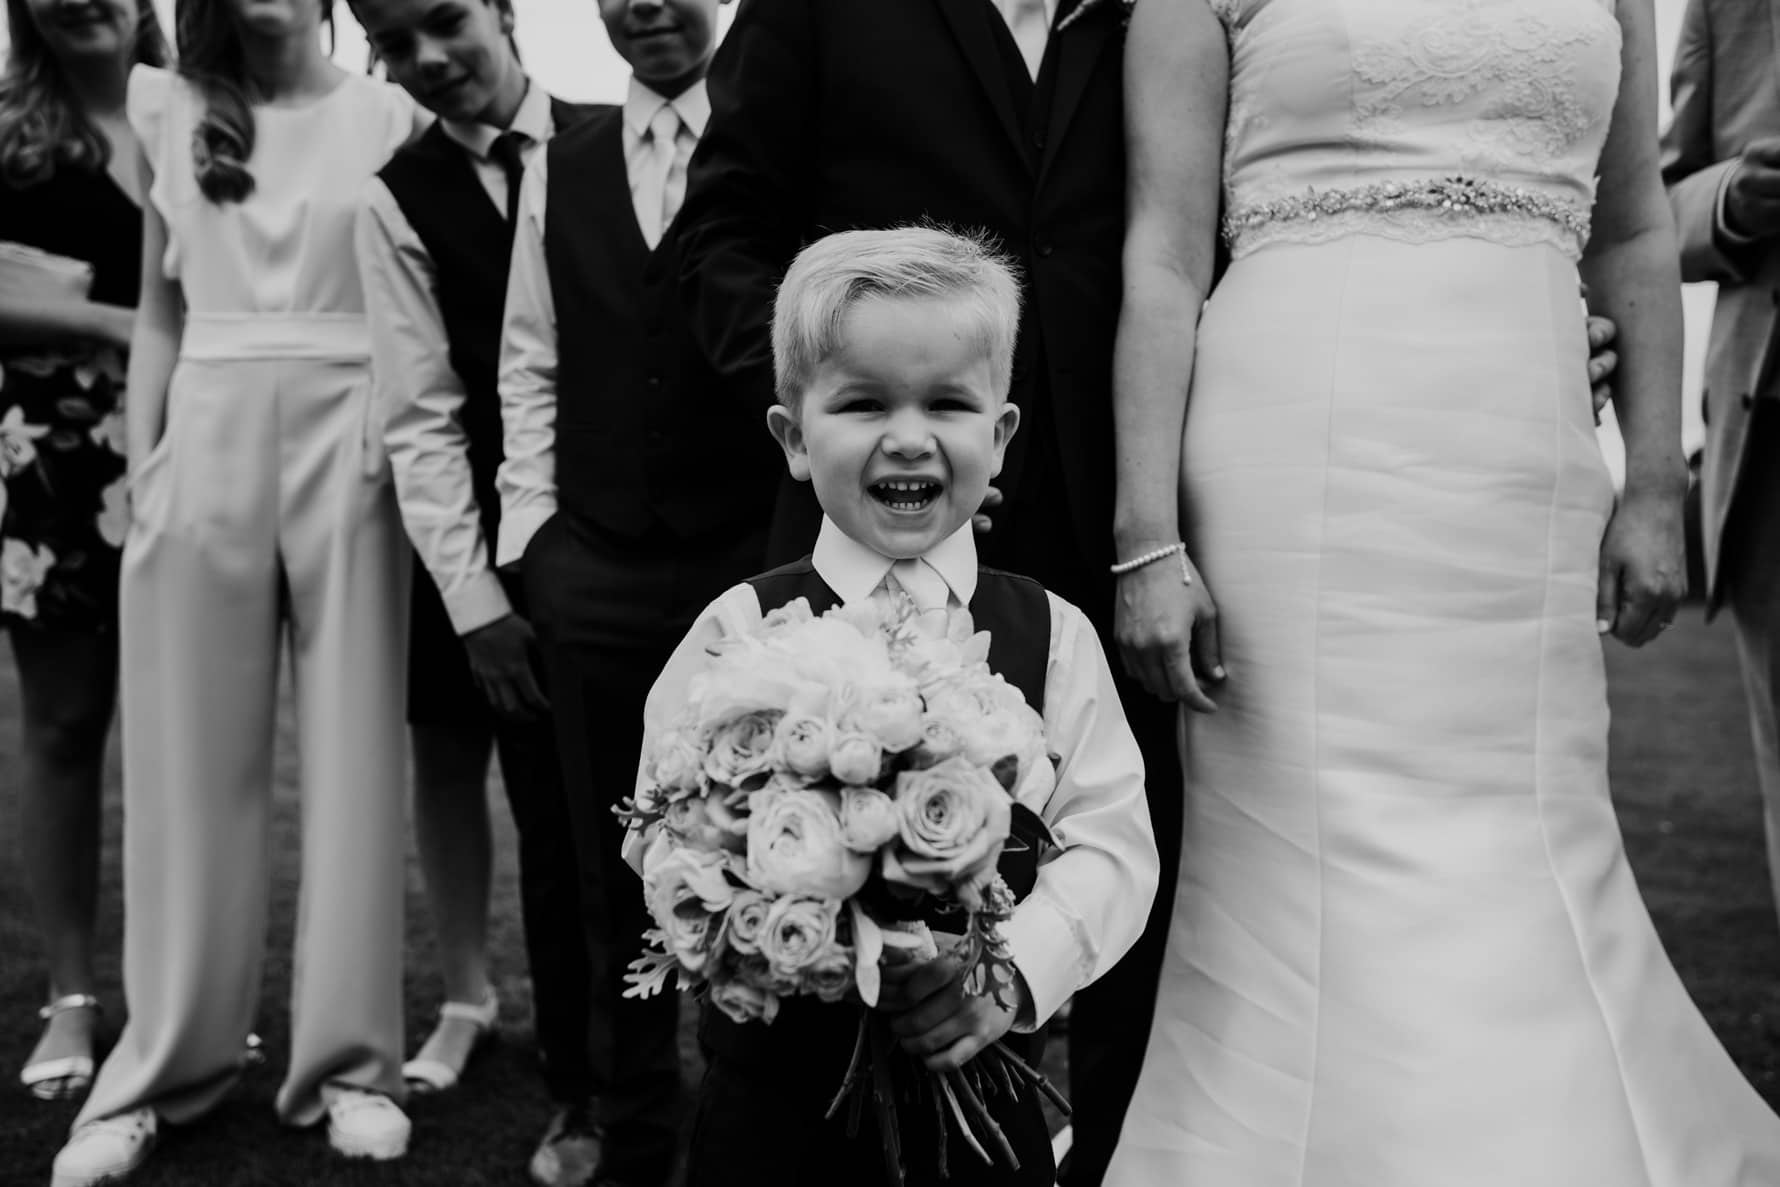 Page boy holding a bunch of flowers in front of the bride